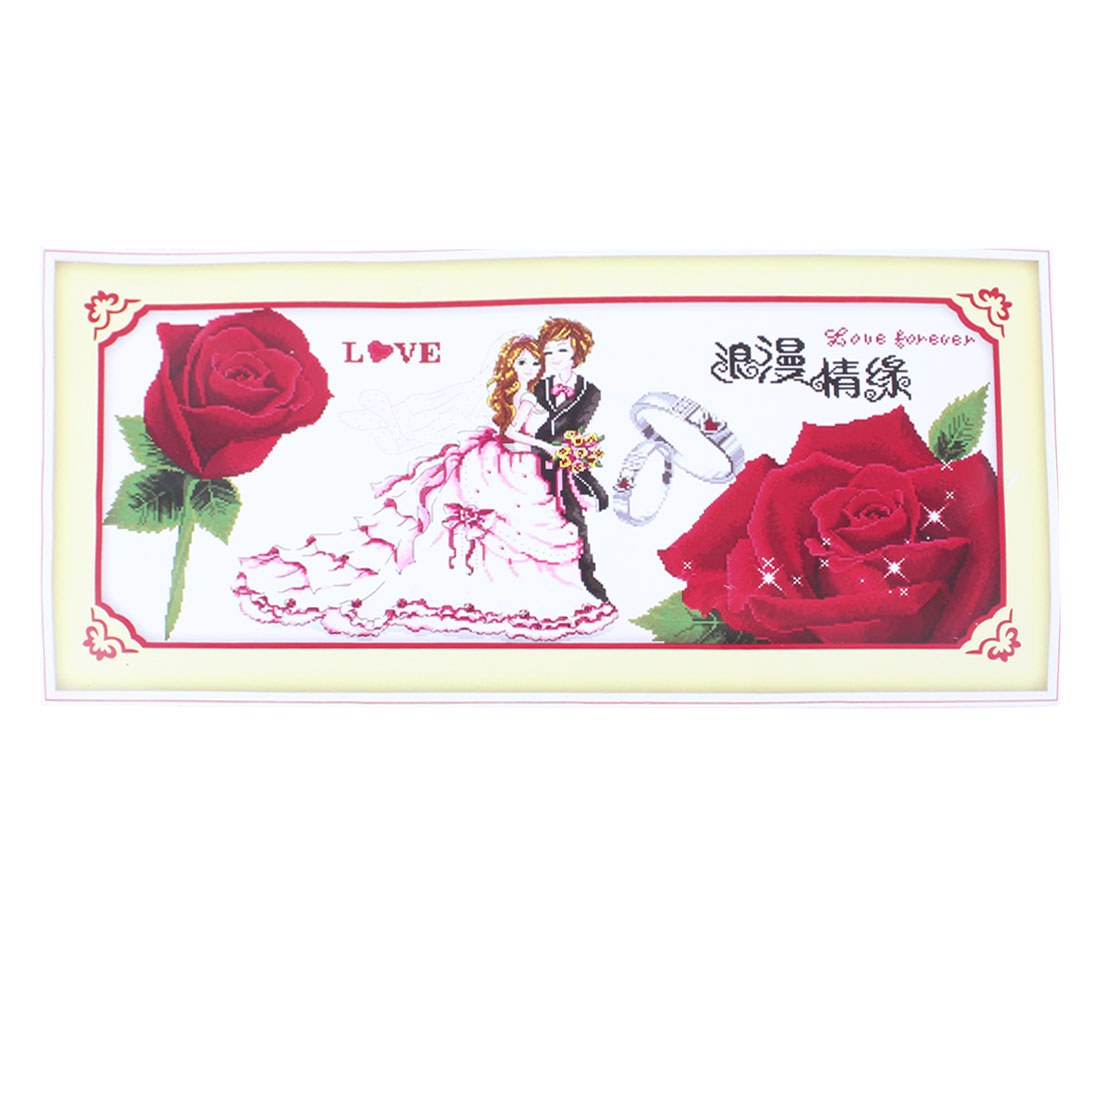 Lovers Wedding Bride Groom Floral Pattern Stamped Cross Stitch Counted Kit